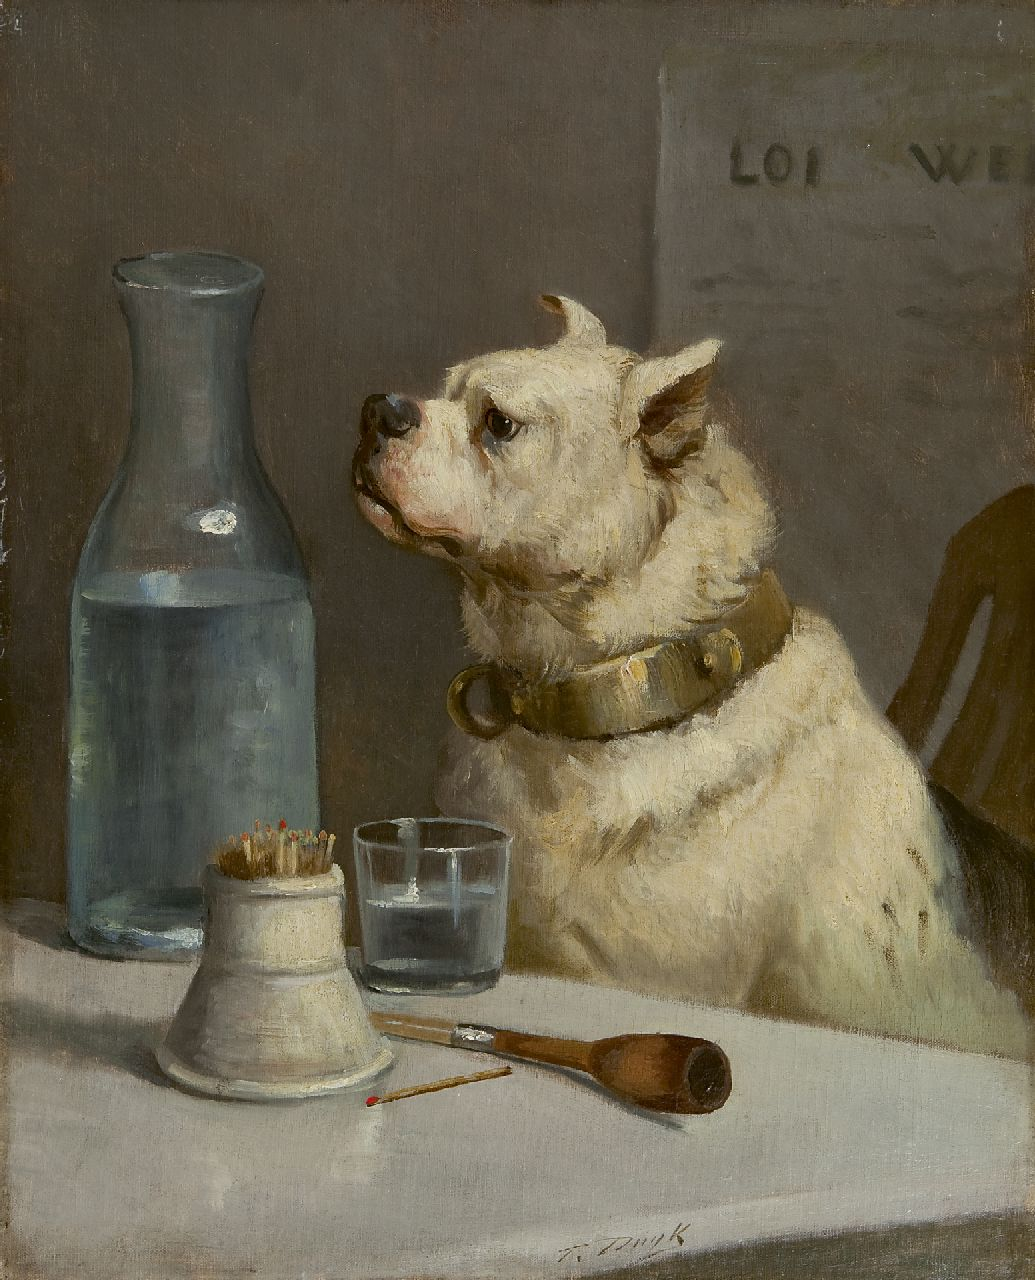 François Duyk | The thirsty dog, oil on canvas, 50.1 x 40.1 cm, signed l.m.